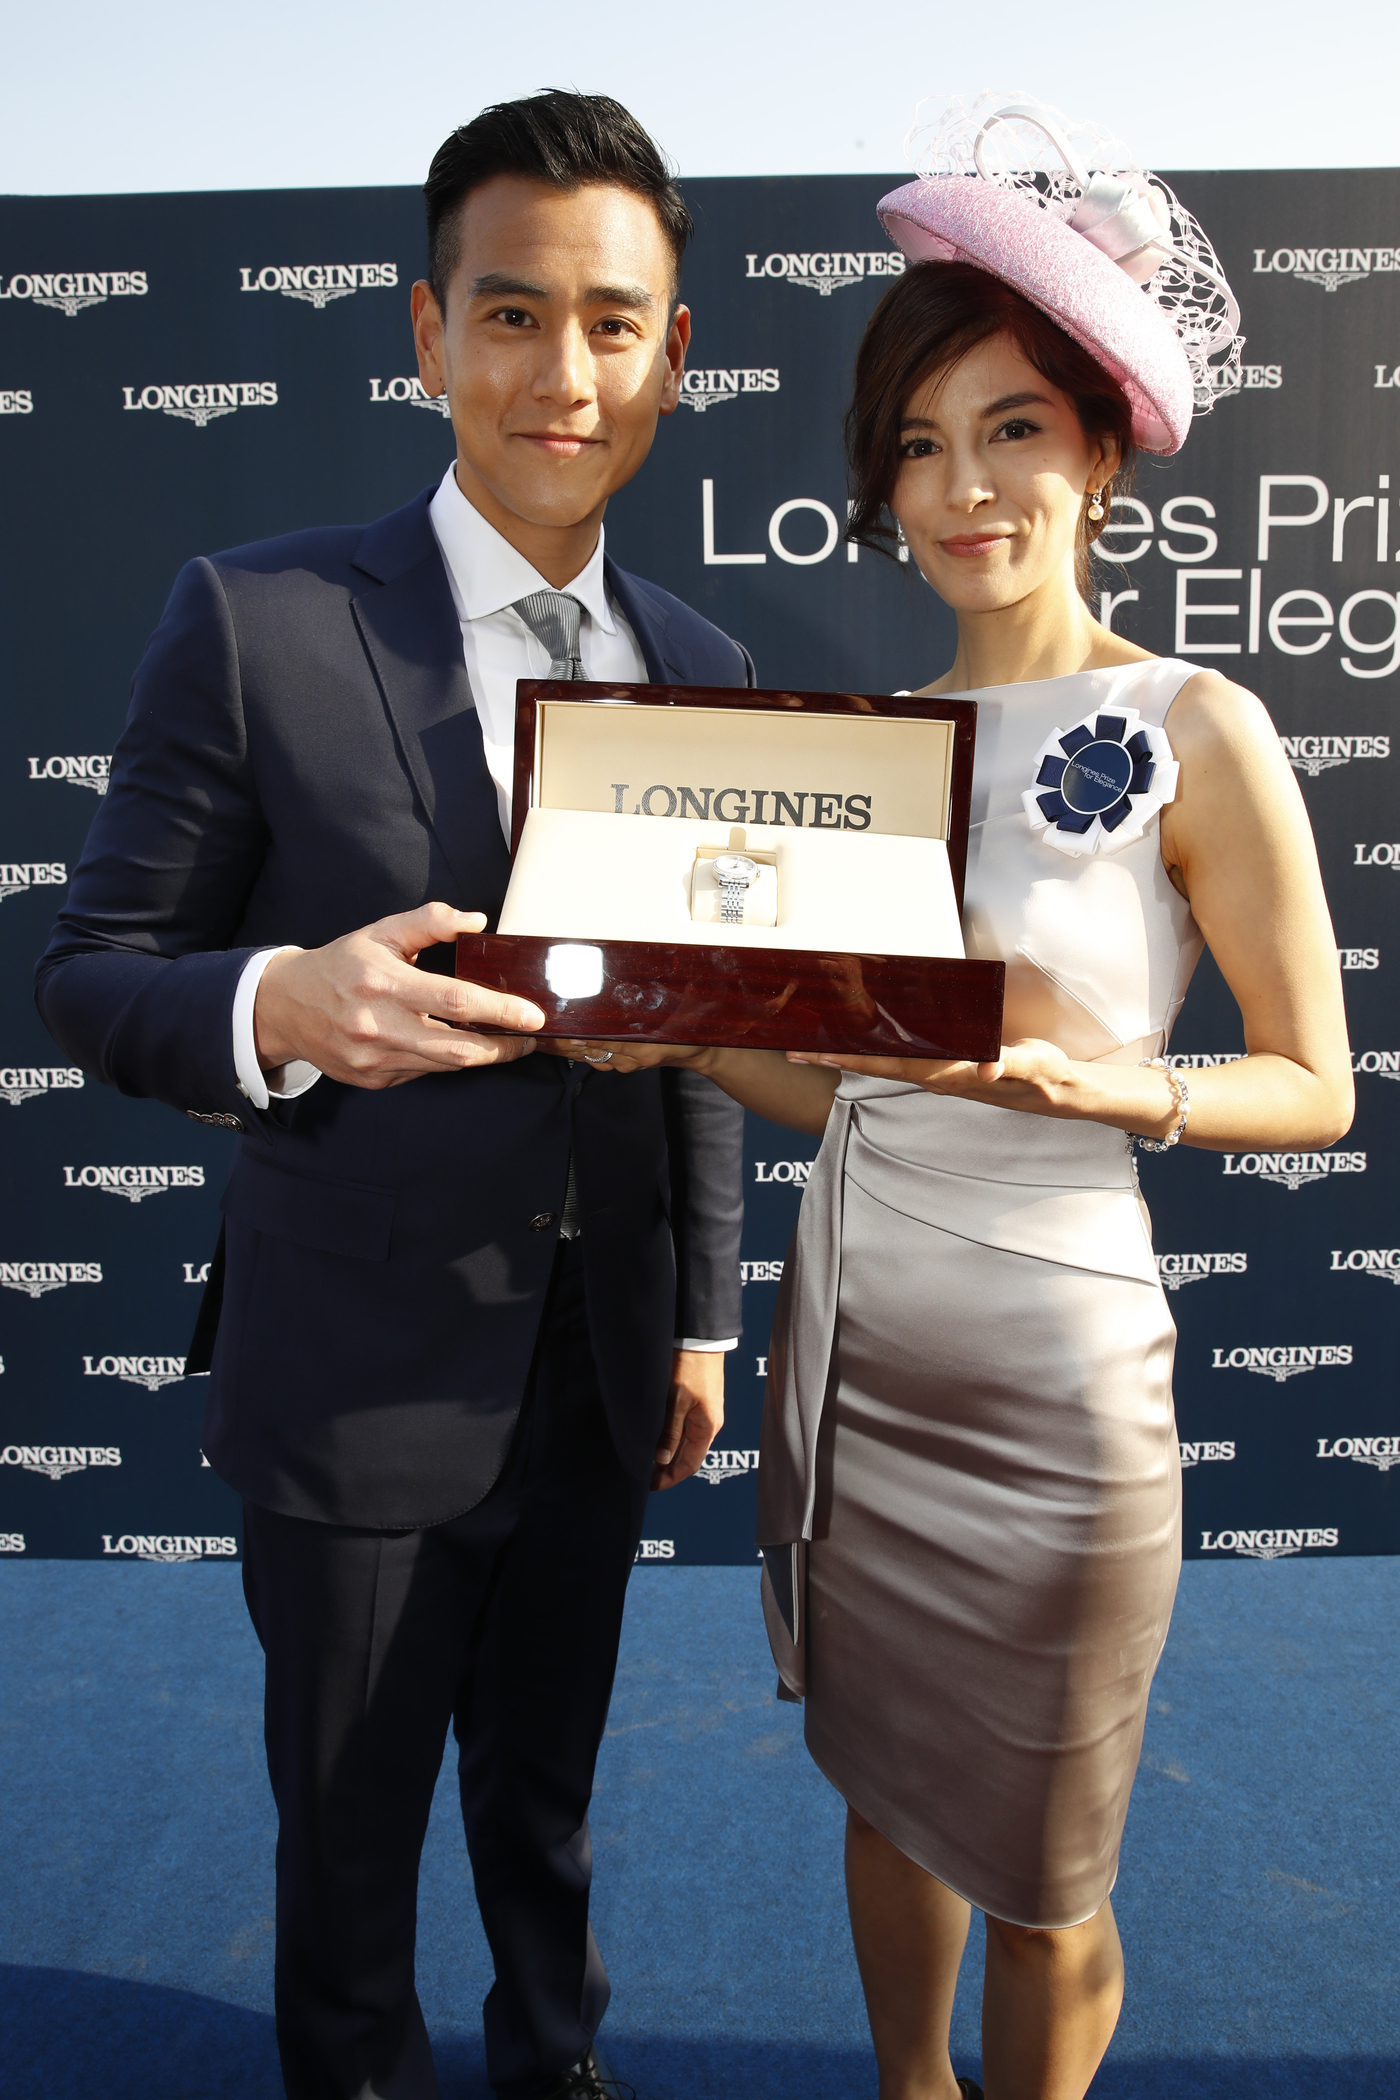 Longines Flat Racing Event: Longines welcomes its Ambassador of Elegance Eddie Peng at the 2017 Longines Hong Kong International Races 1